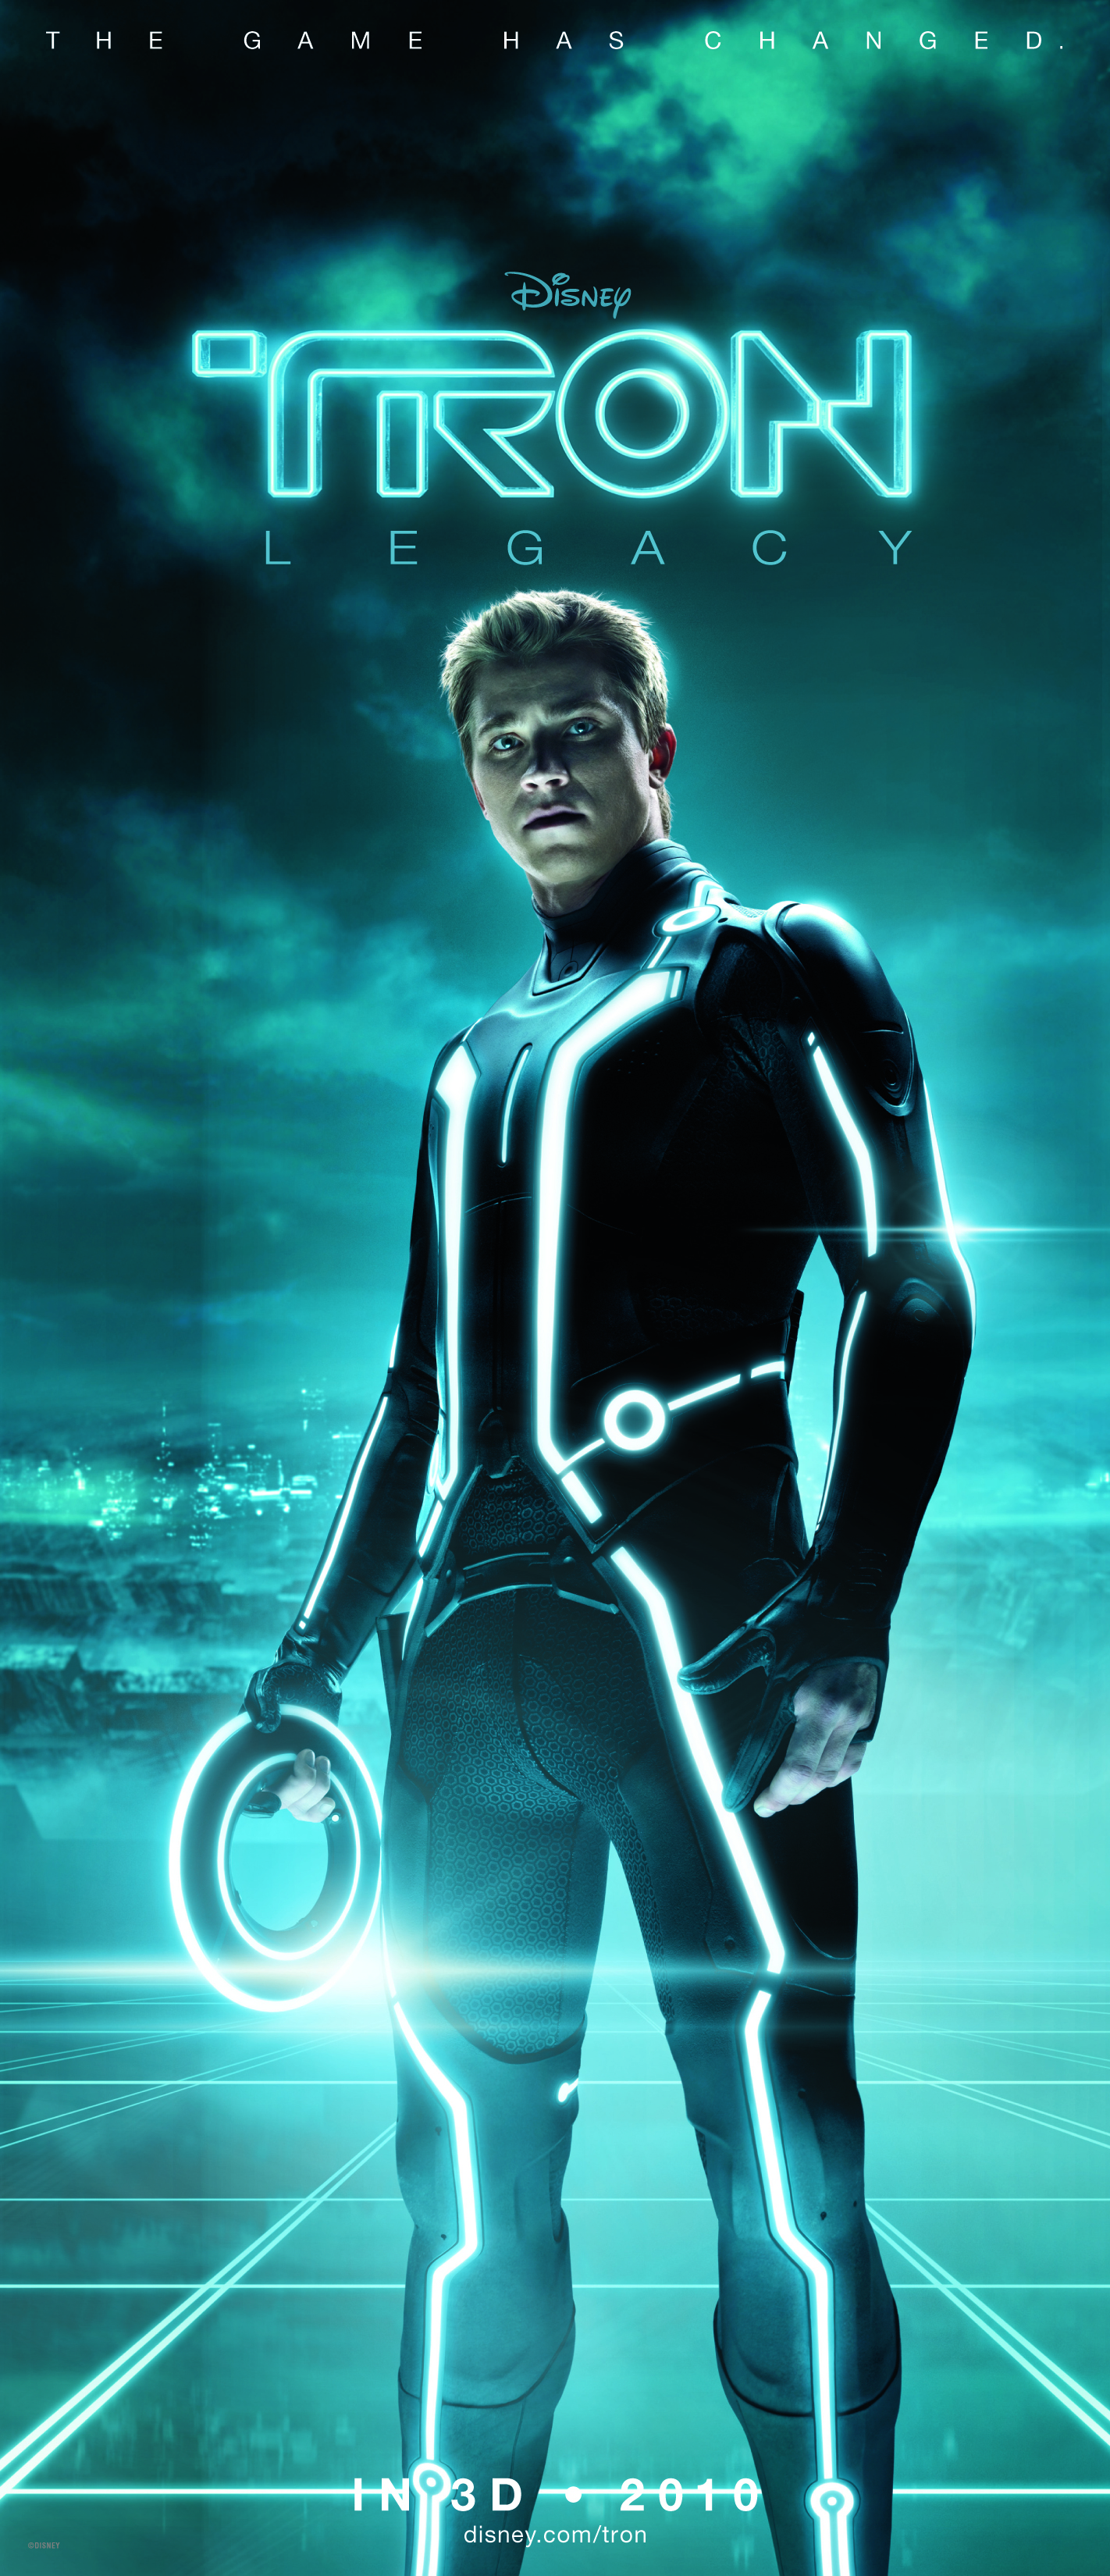 image - tron legacy poster 06 | disney wiki | fandom powered